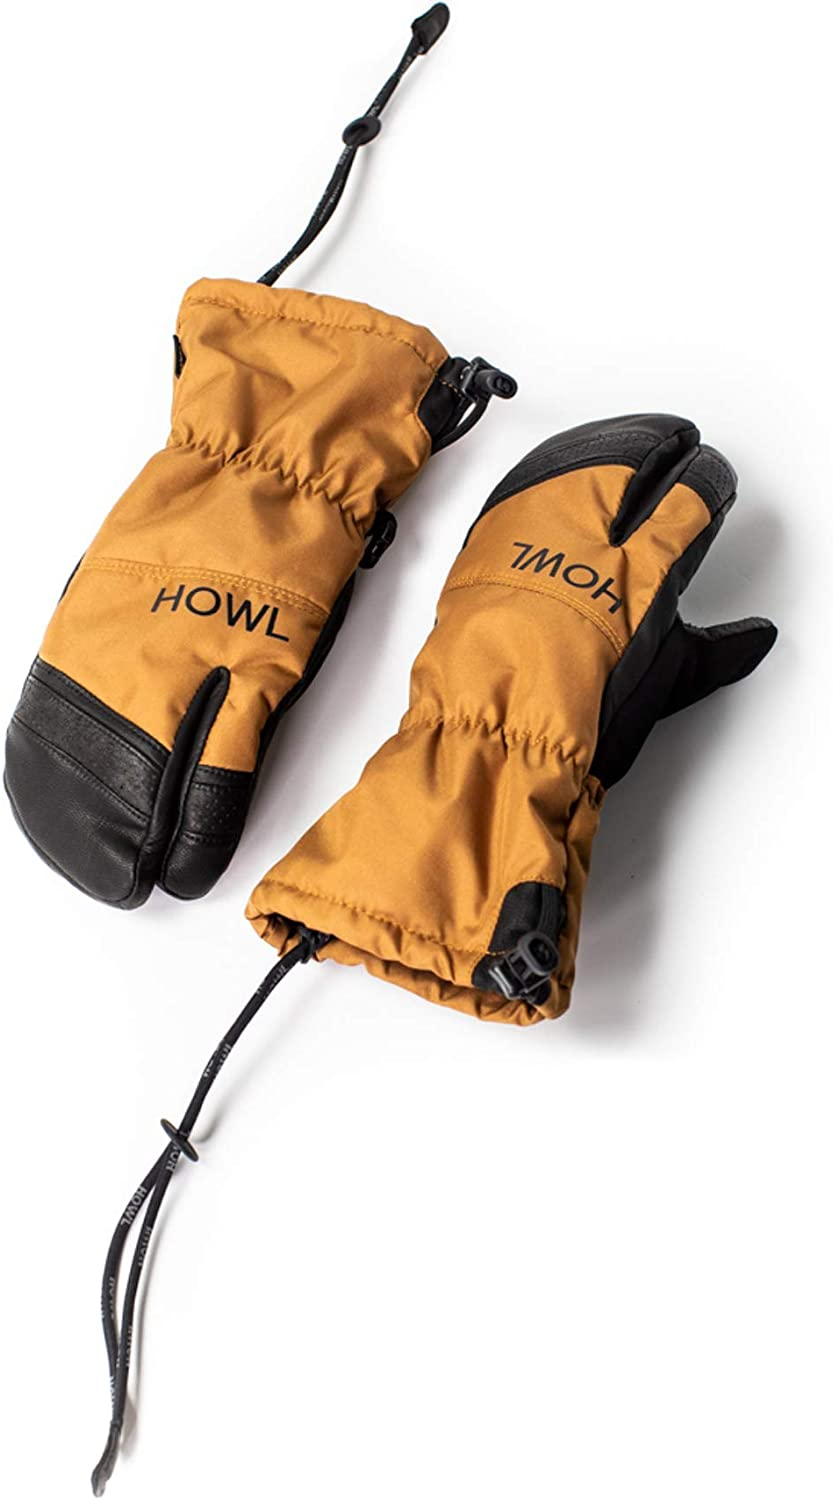 Thermal Mitten for Snowboarding Skiing HOWL TRIGGER: Warm Winter Snow Mittens Large